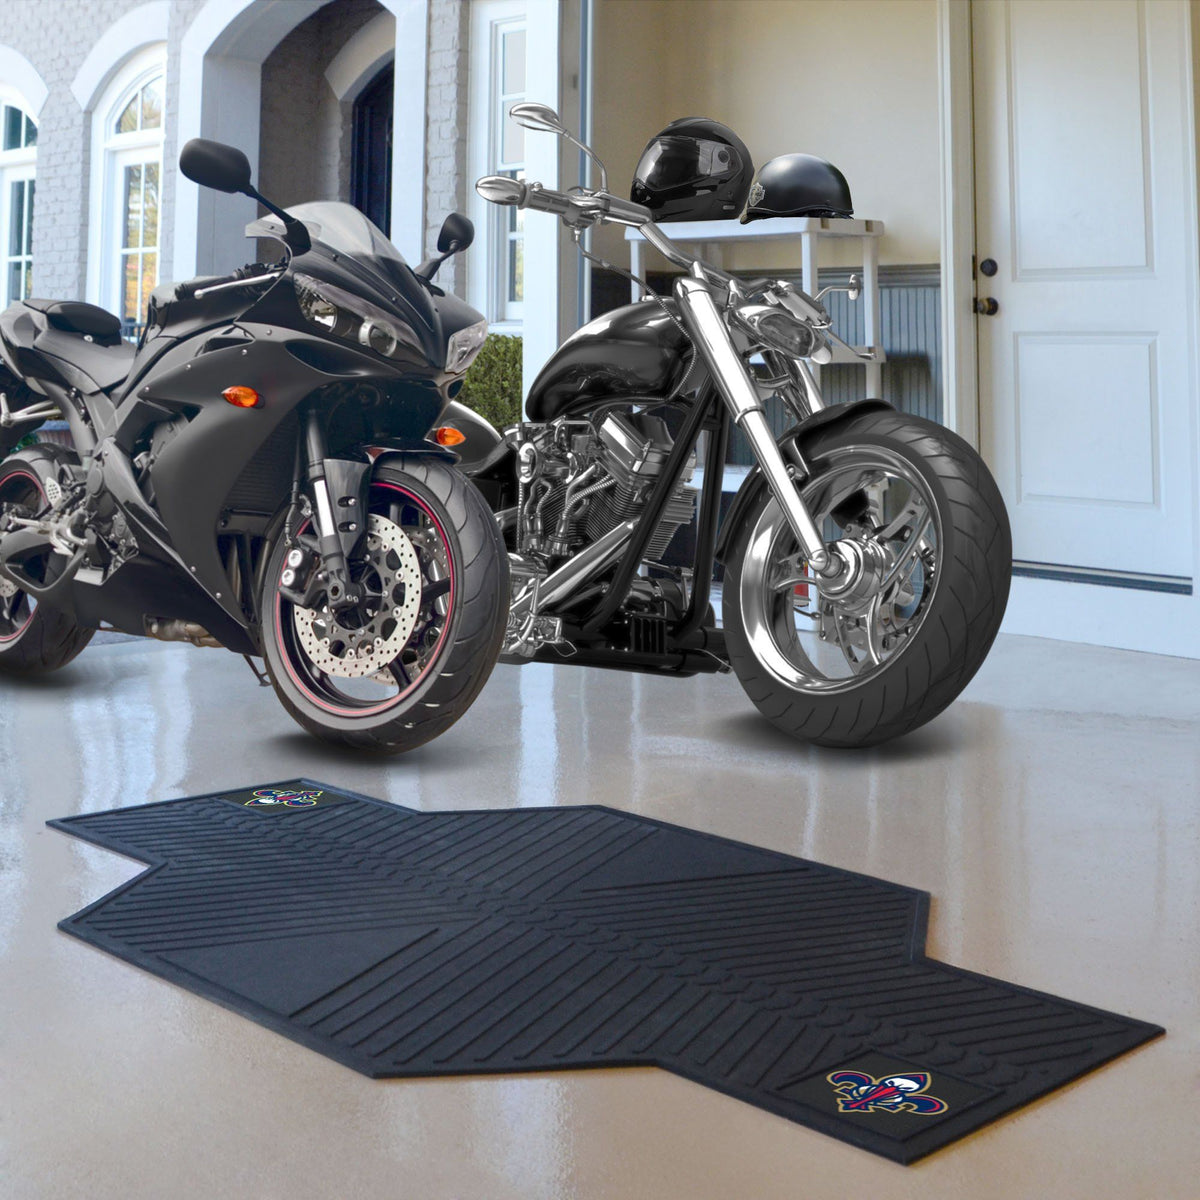 NBA - Motorcycle Mat NBA Mats, Motorcycle Accessory, Motorcycle Mat, NBA, Auto Fan Mats New Orleans Pelicans